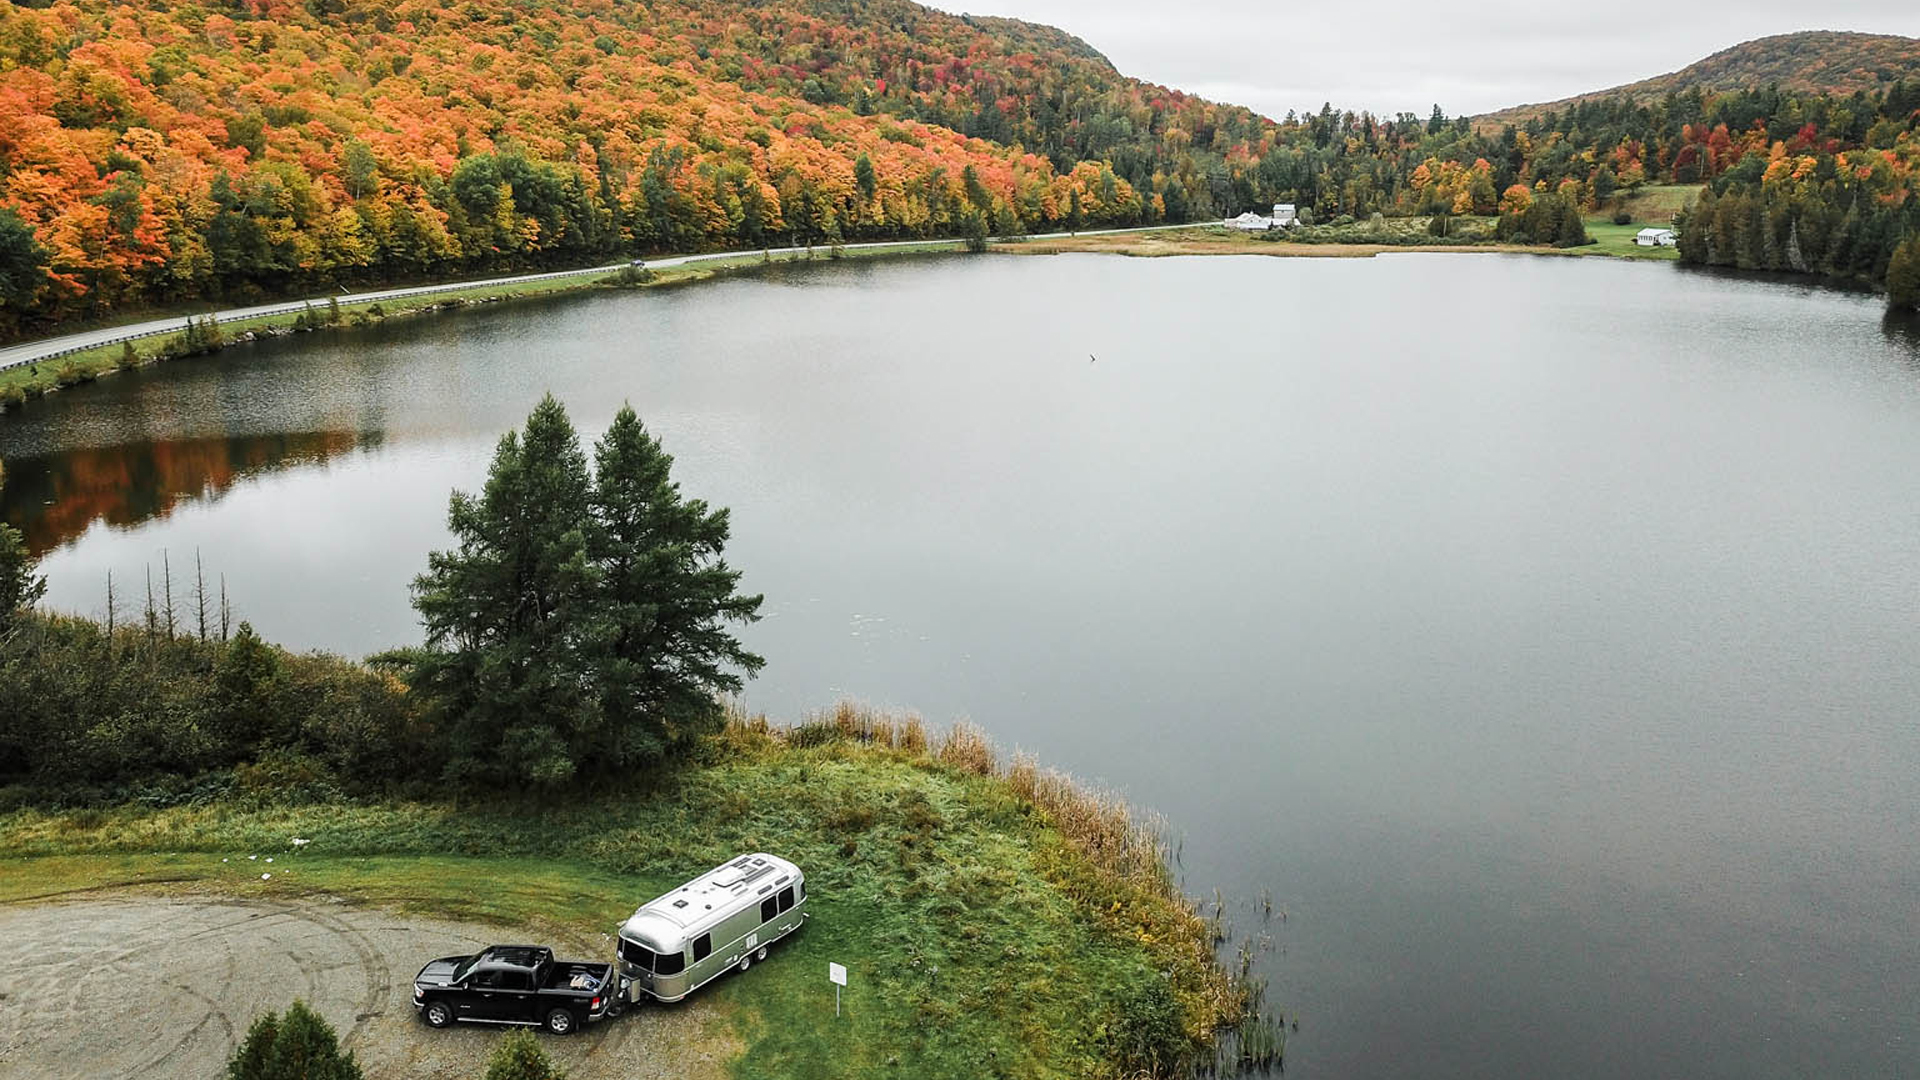 Airstream Travel Trailer at a campground in the fall by a lake